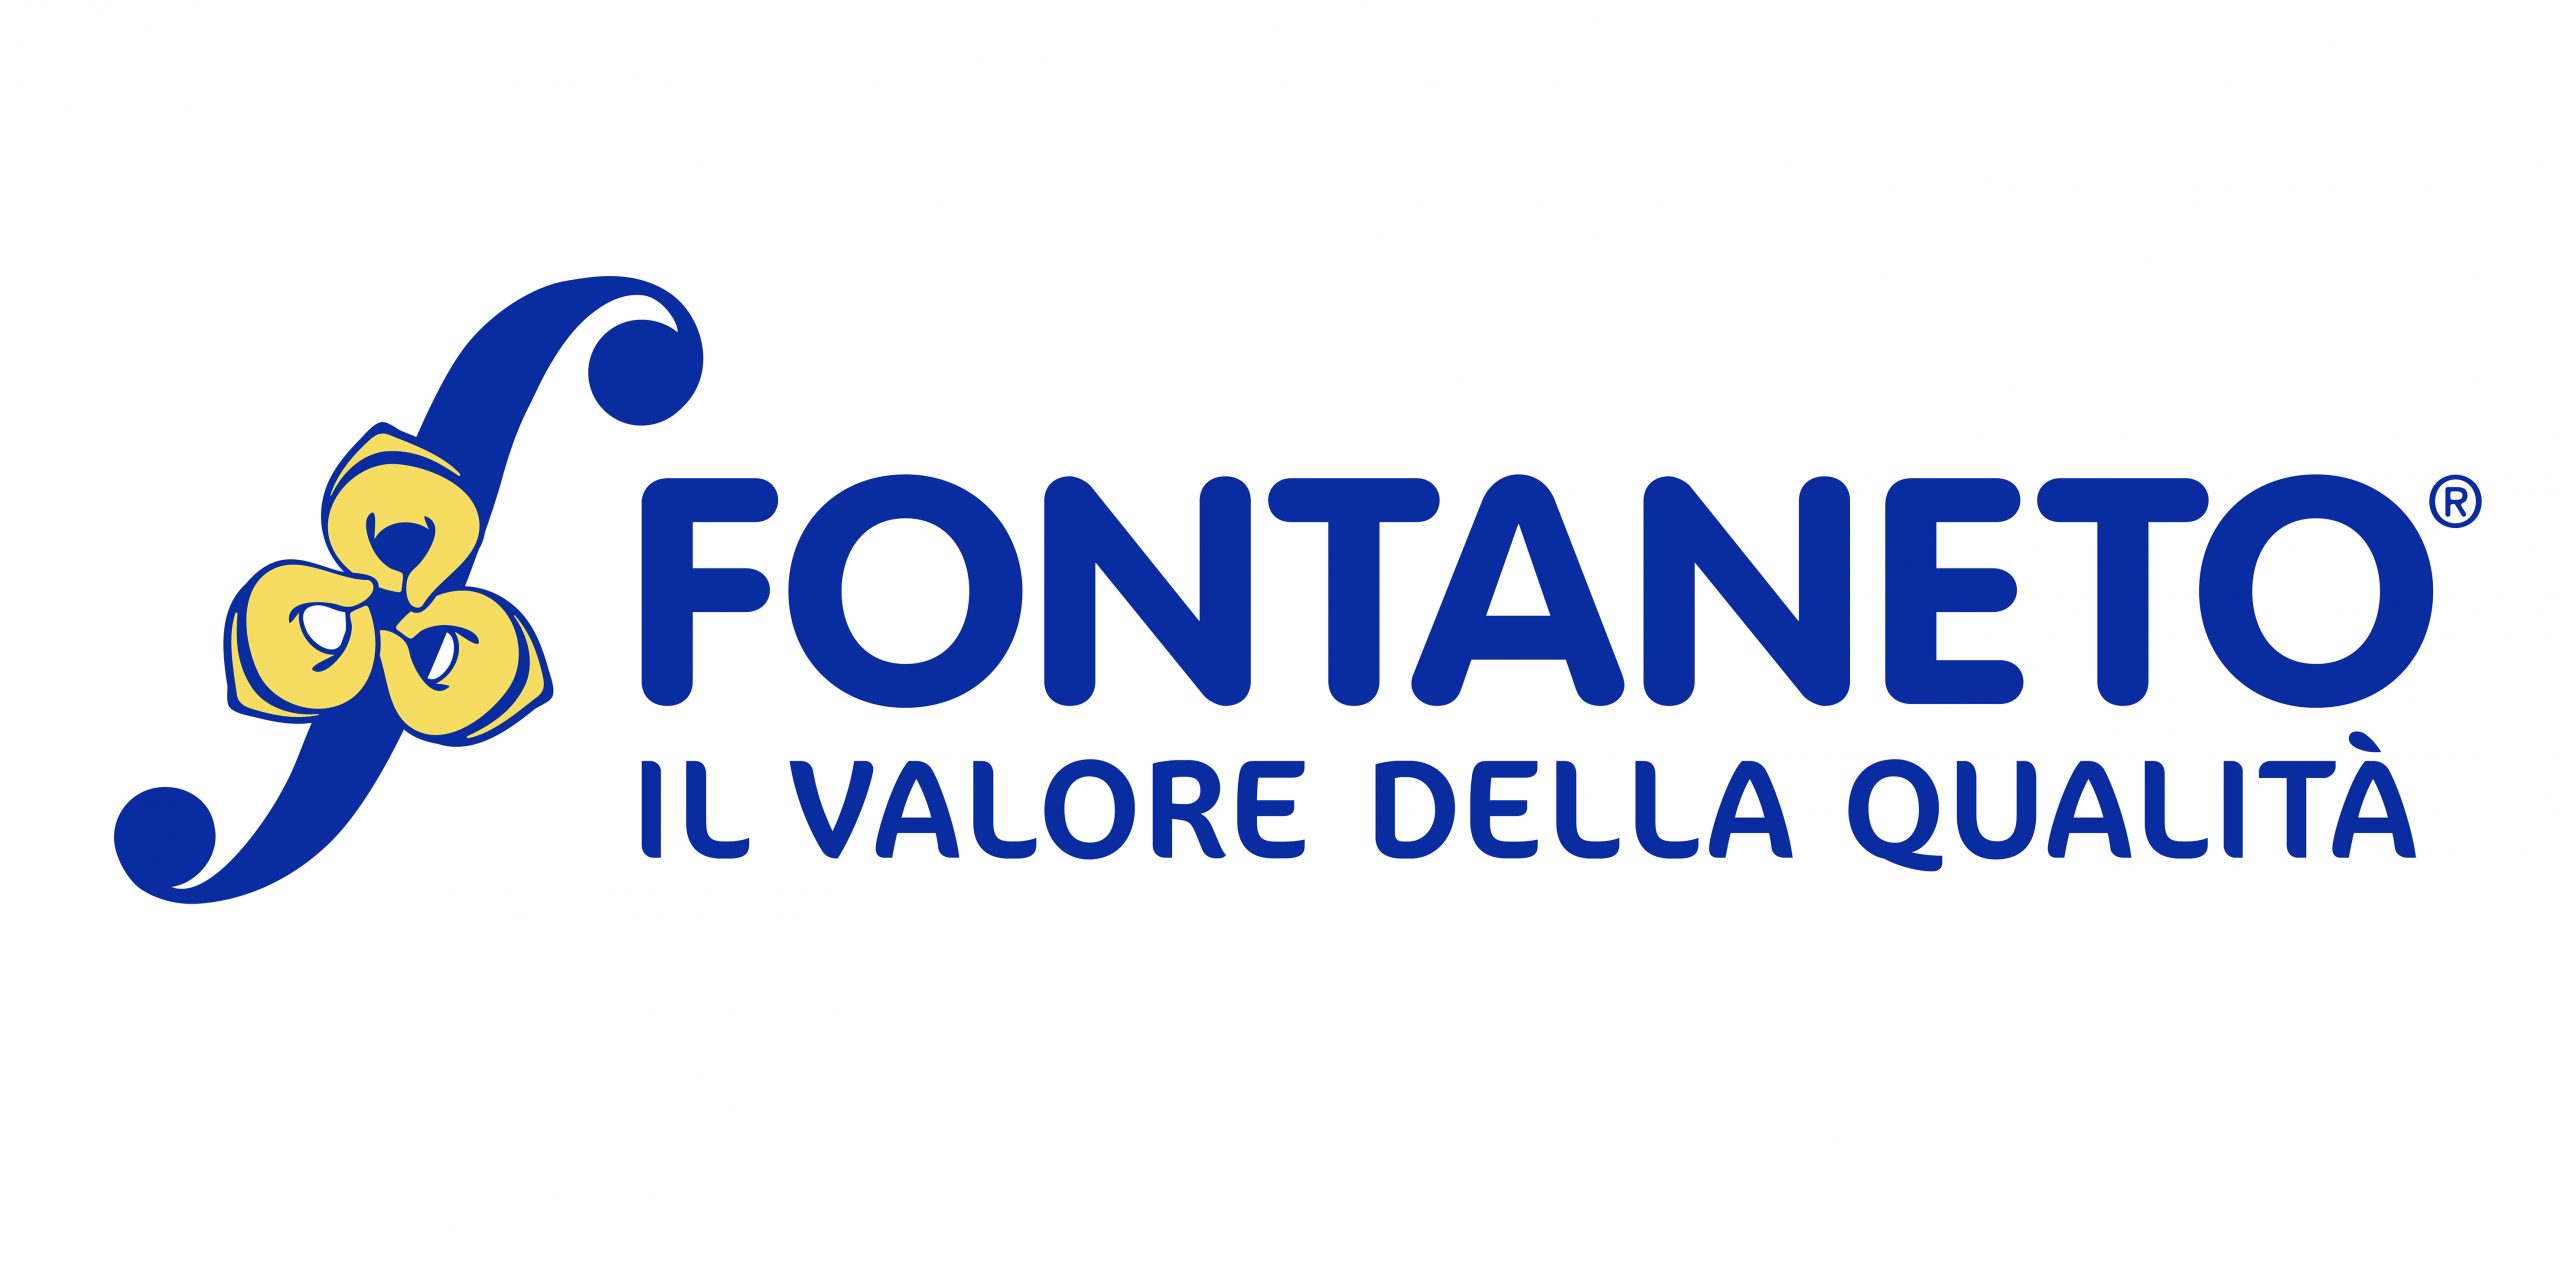 and1950873_iexe_Restyling_Logotipo_Fontaneto